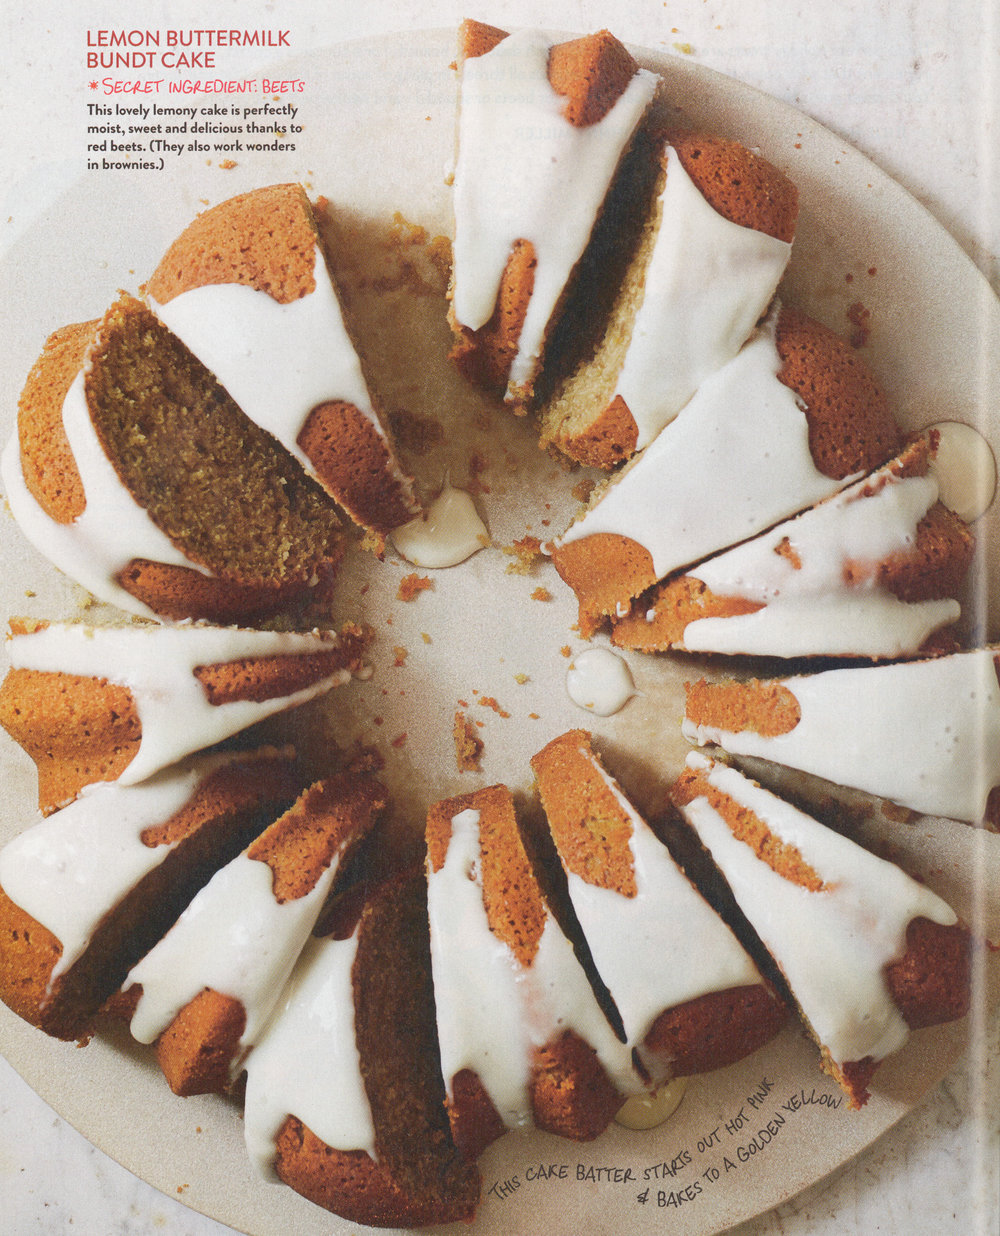 lemon buttermilk bundt cake.jpg